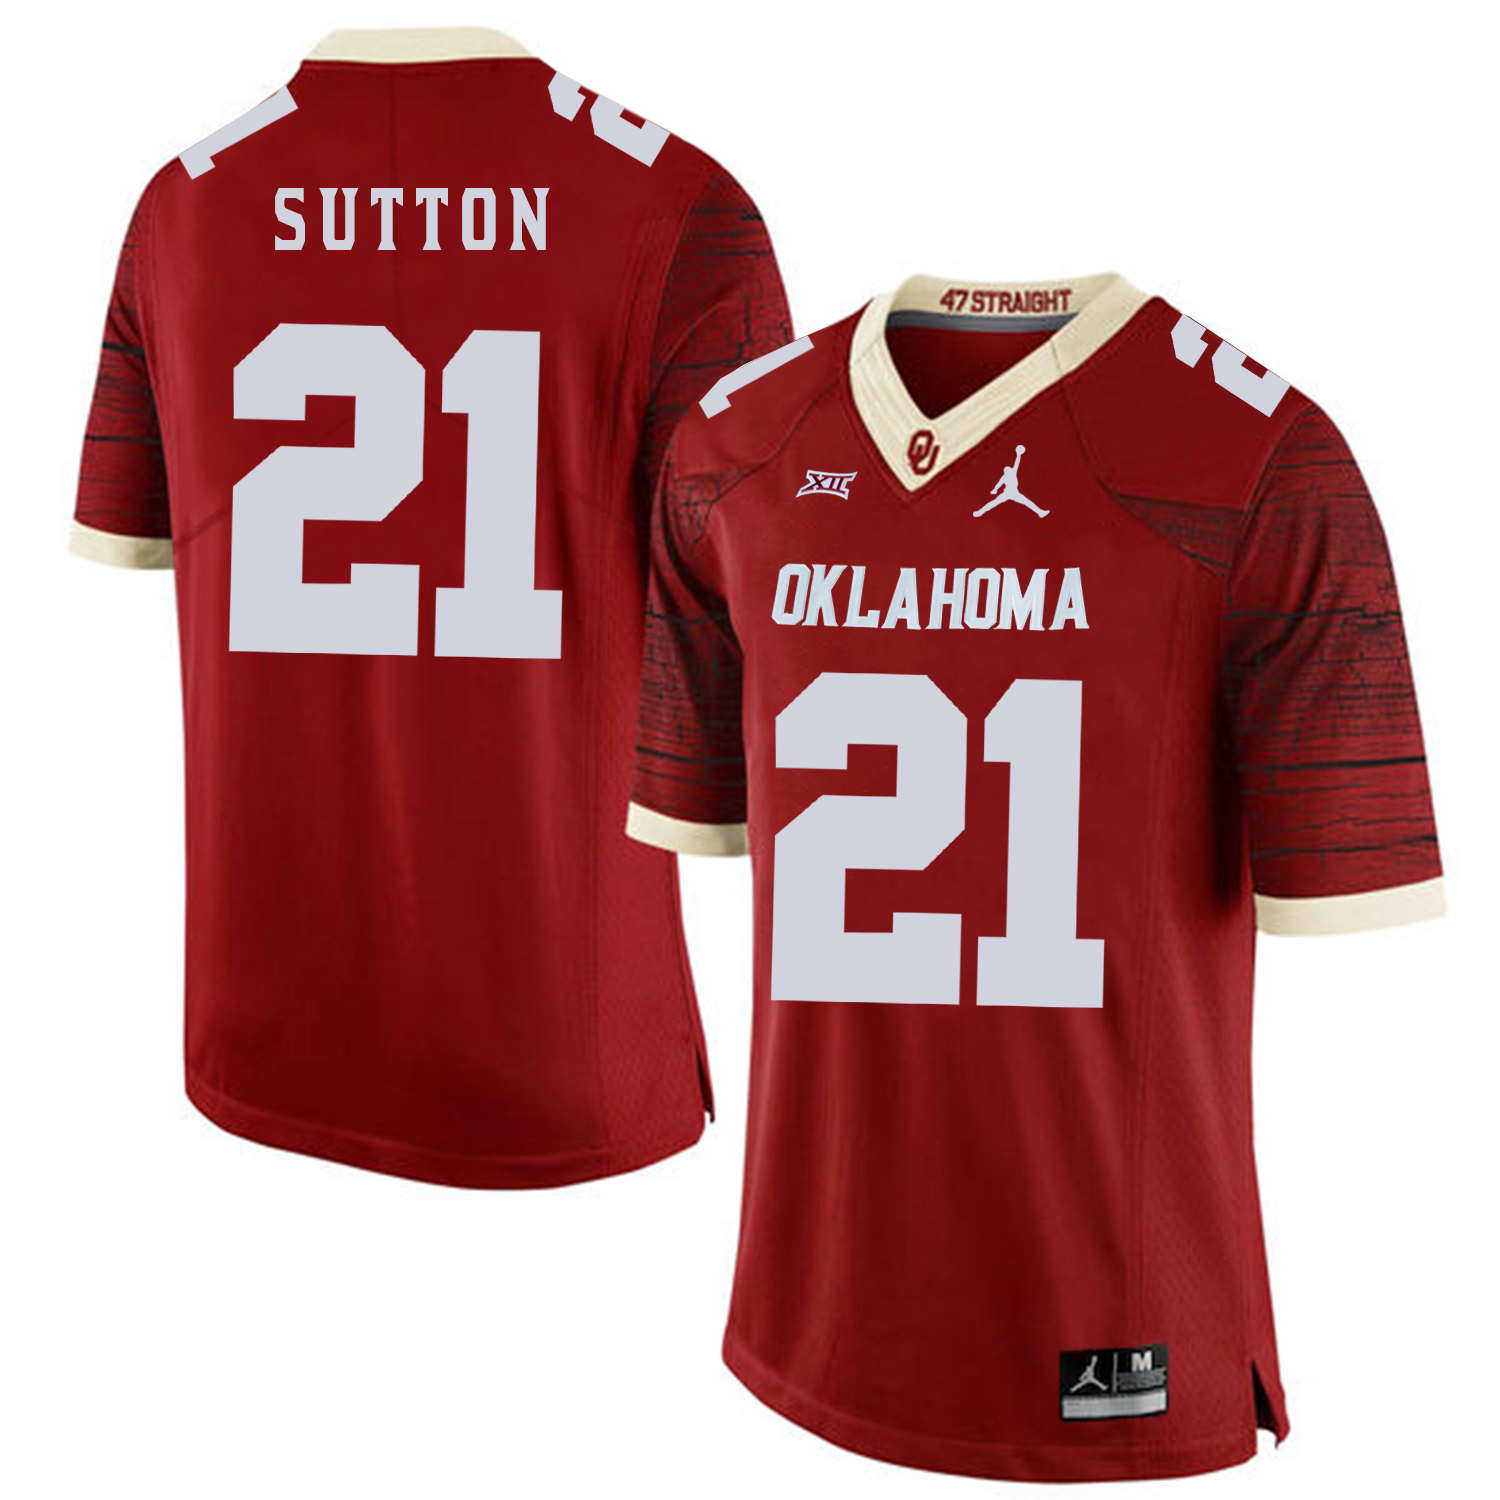 Oklahoma Sooners 21 Marcelias Sutton Red 47 Game Winning Streak College Football Jersey